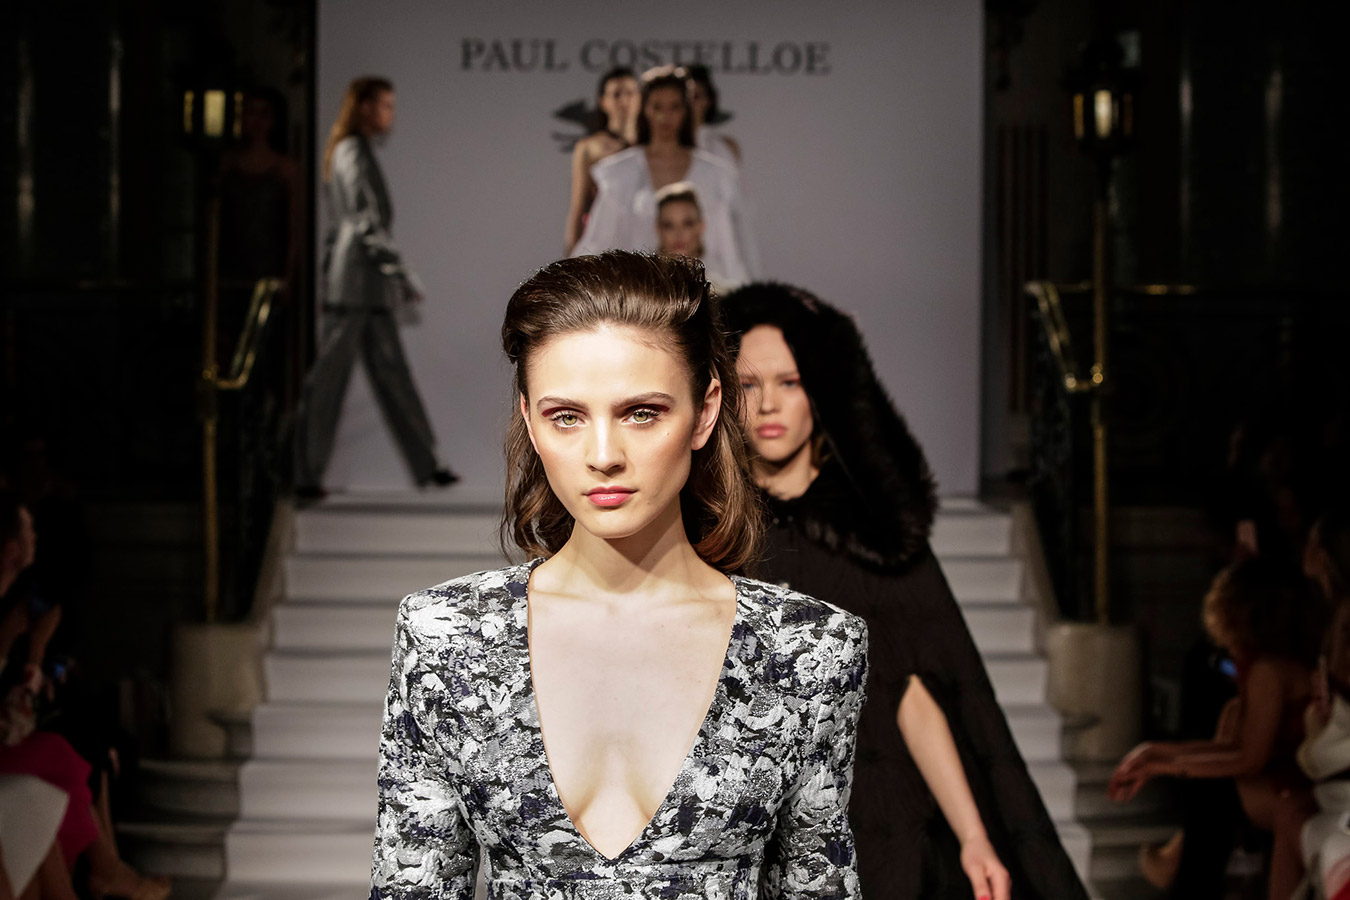 e72c6f651e1 LFW A/W 2017: A Moment with Paul Costelloe - Juliana Chow